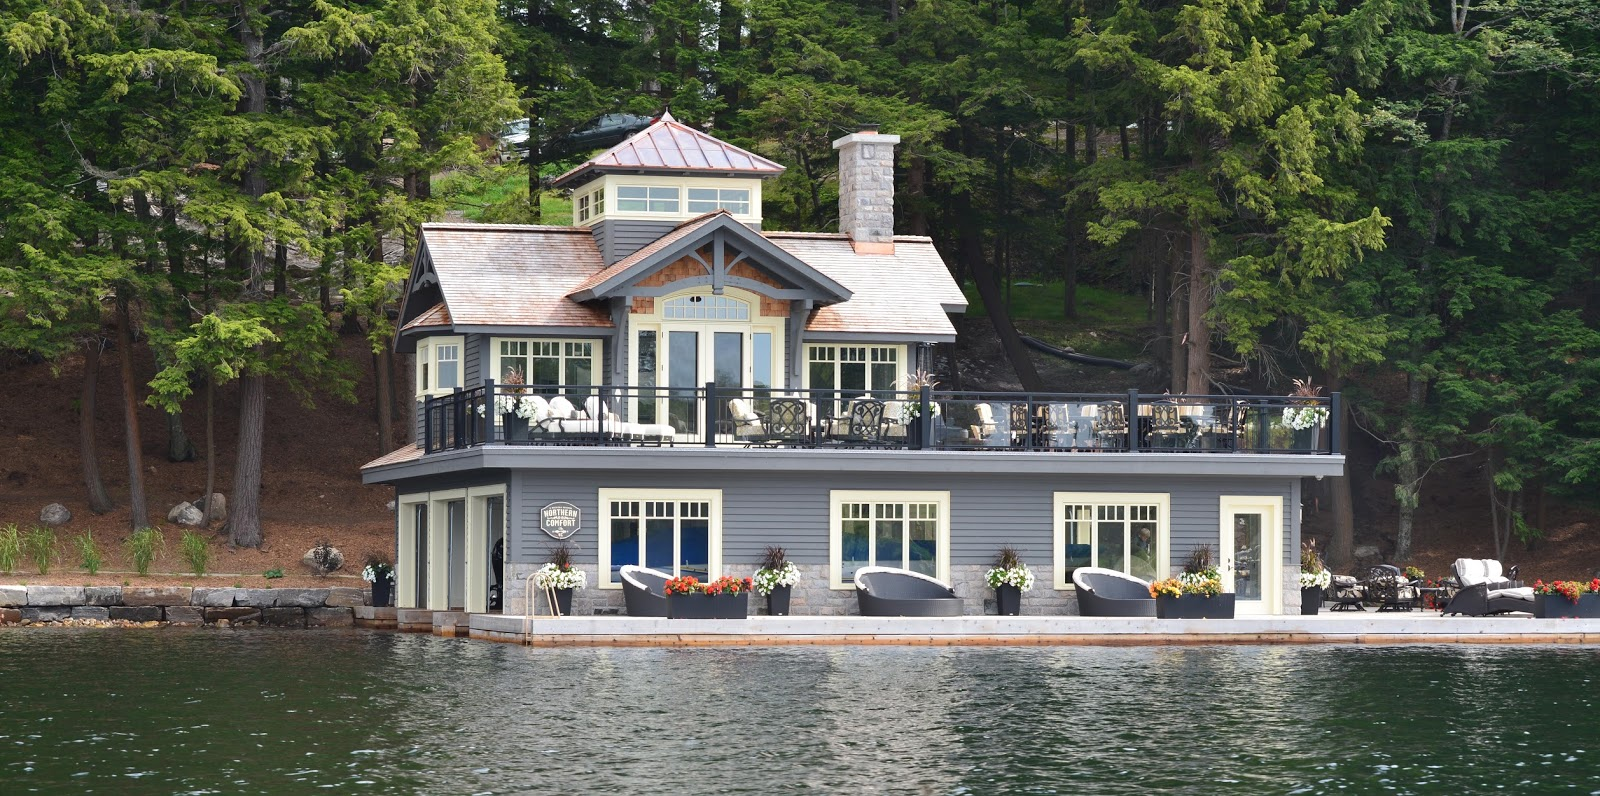 Just things and thoughts muskoka boathouses and cottages for Boat house plans pictures